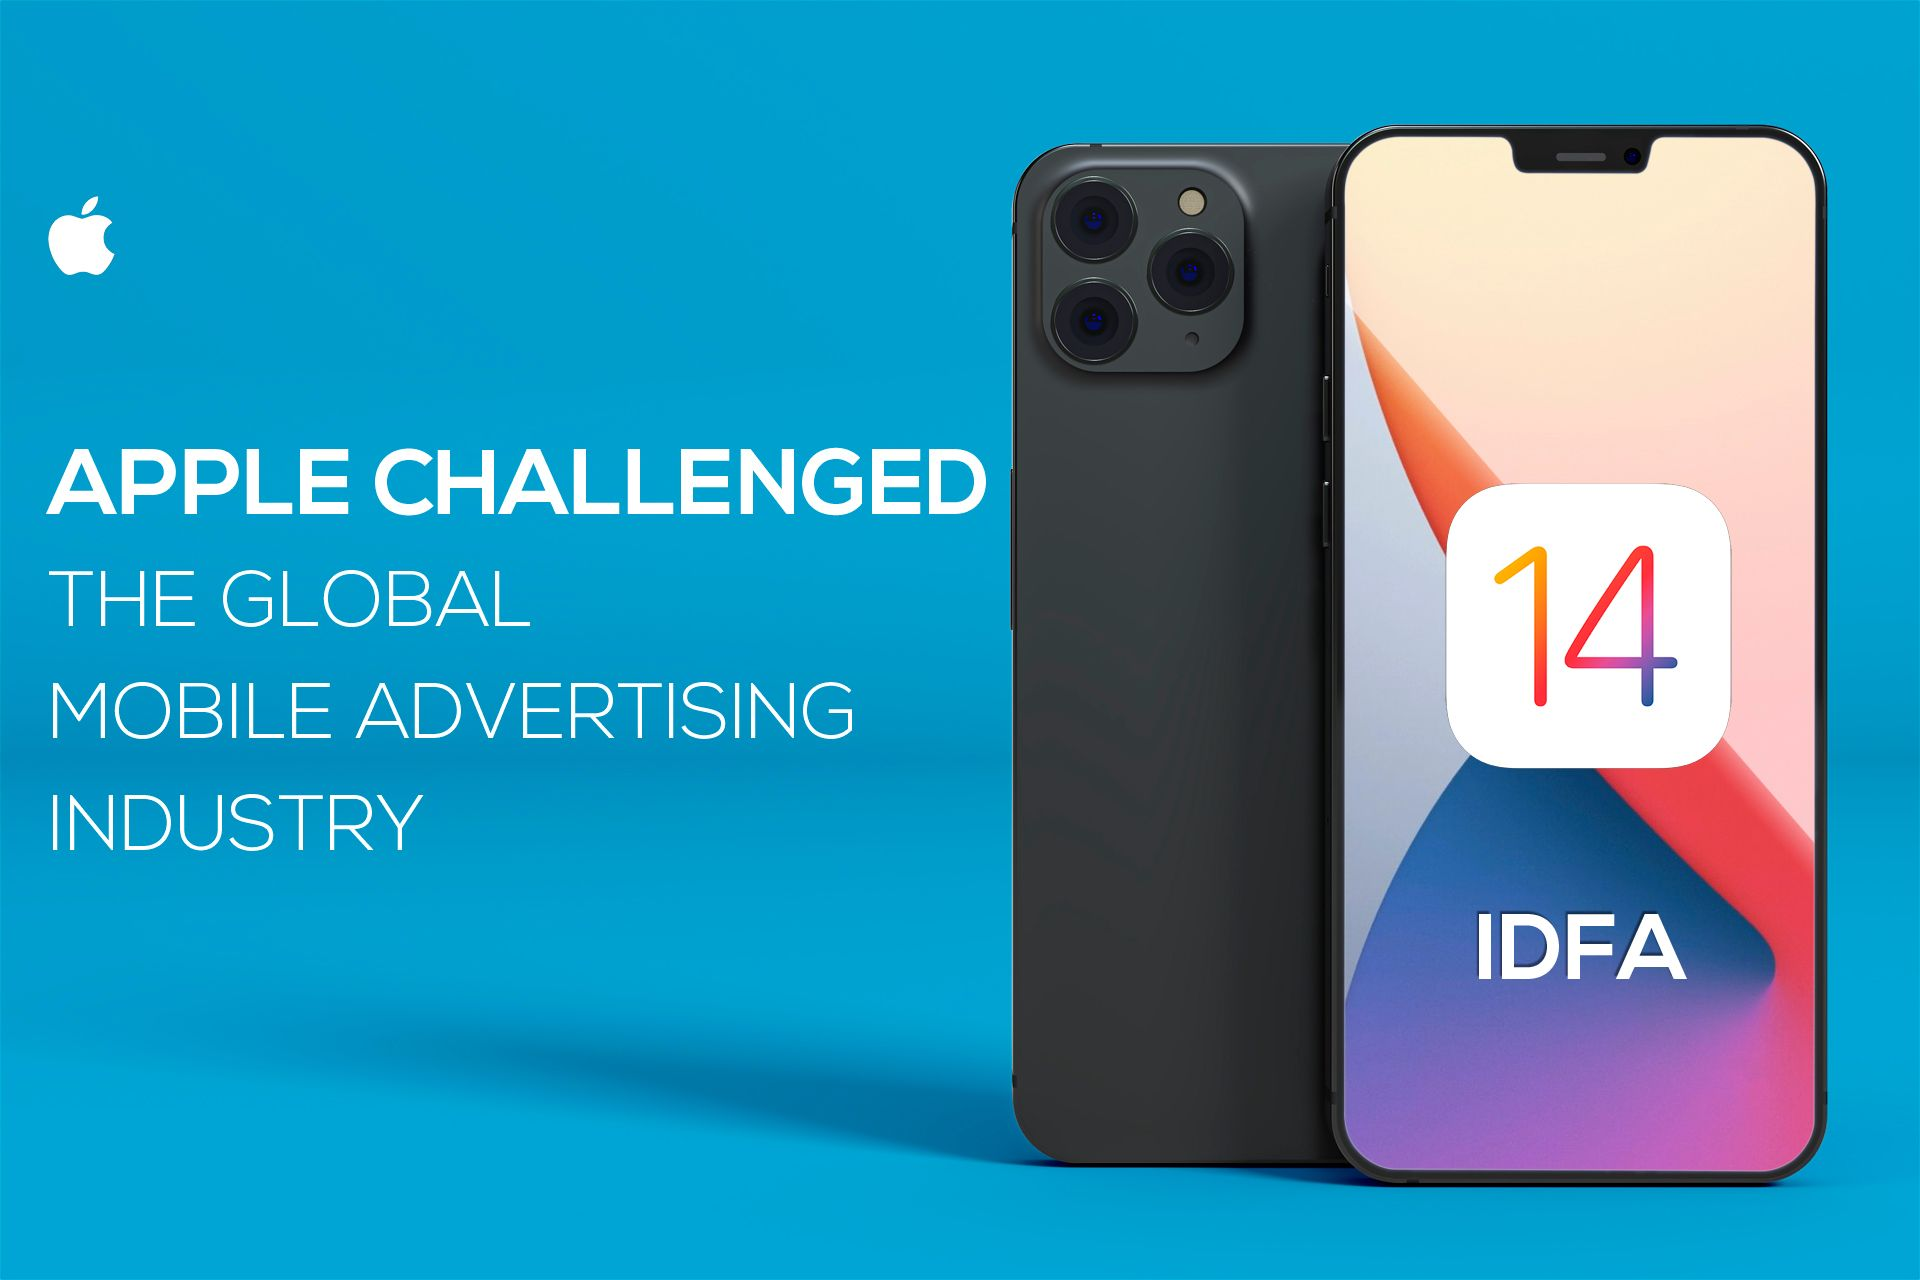 iOS 14 & IDFA. Mobile Advertising Industry meets global changes